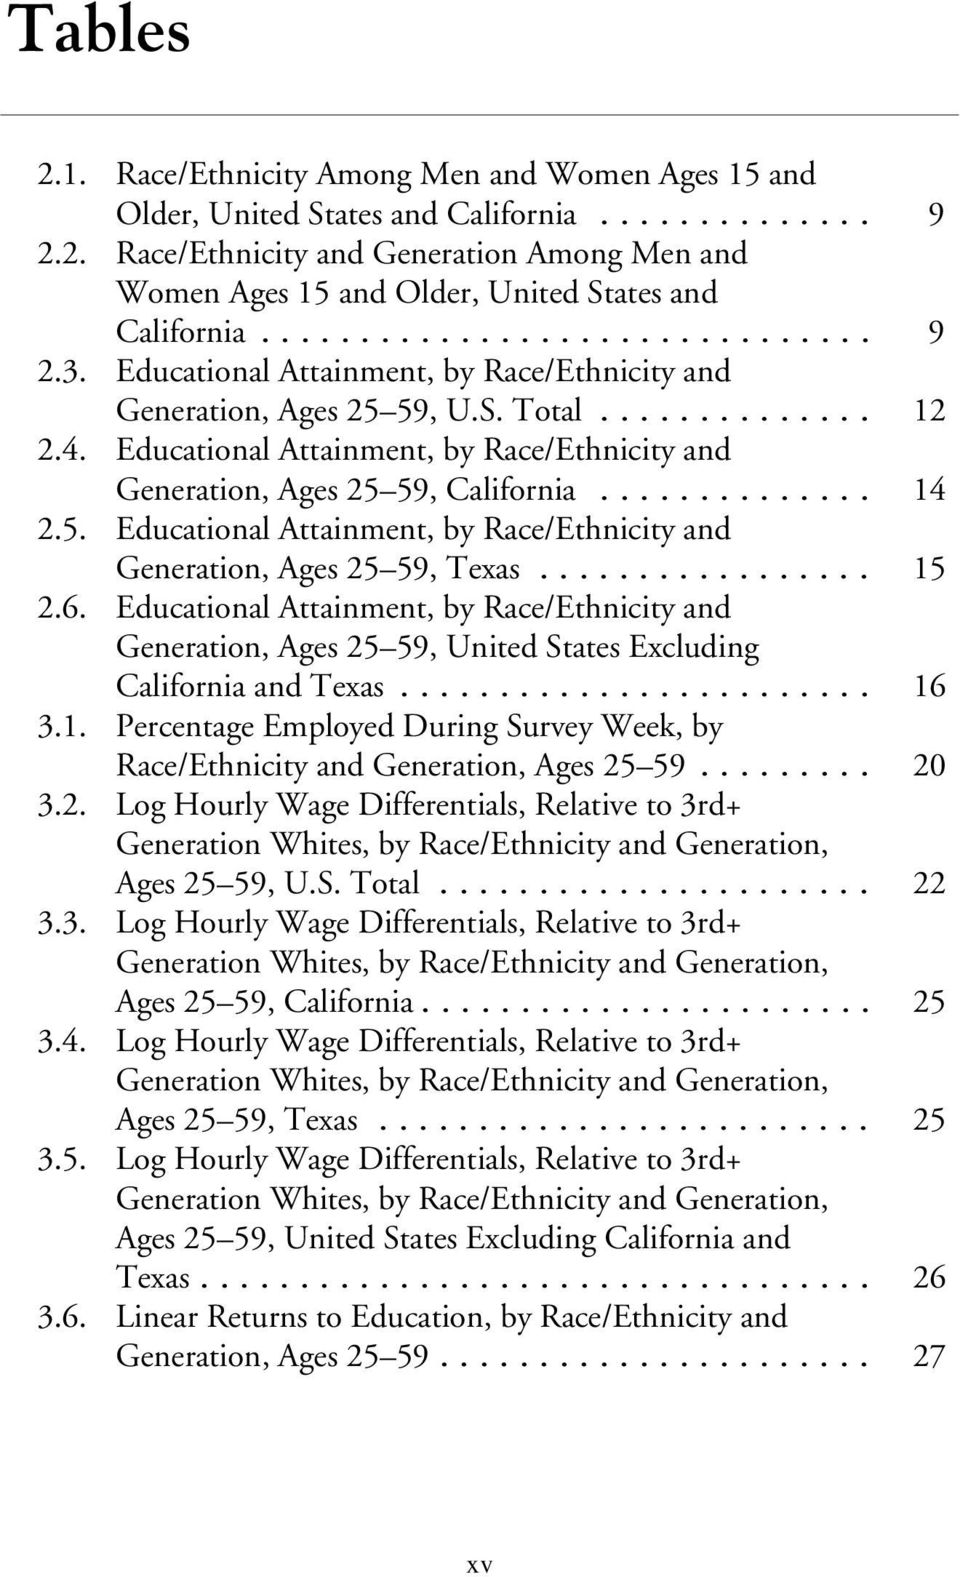 .. 15 2.6. Educational Attainment, by Race/Ethnicity and Generation, Ages 25 59, United States Excluding California and Texas... 16 3.1. Percentage Employed During Survey Week, by Race/Ethnicity and Generation, Ages 25 59.